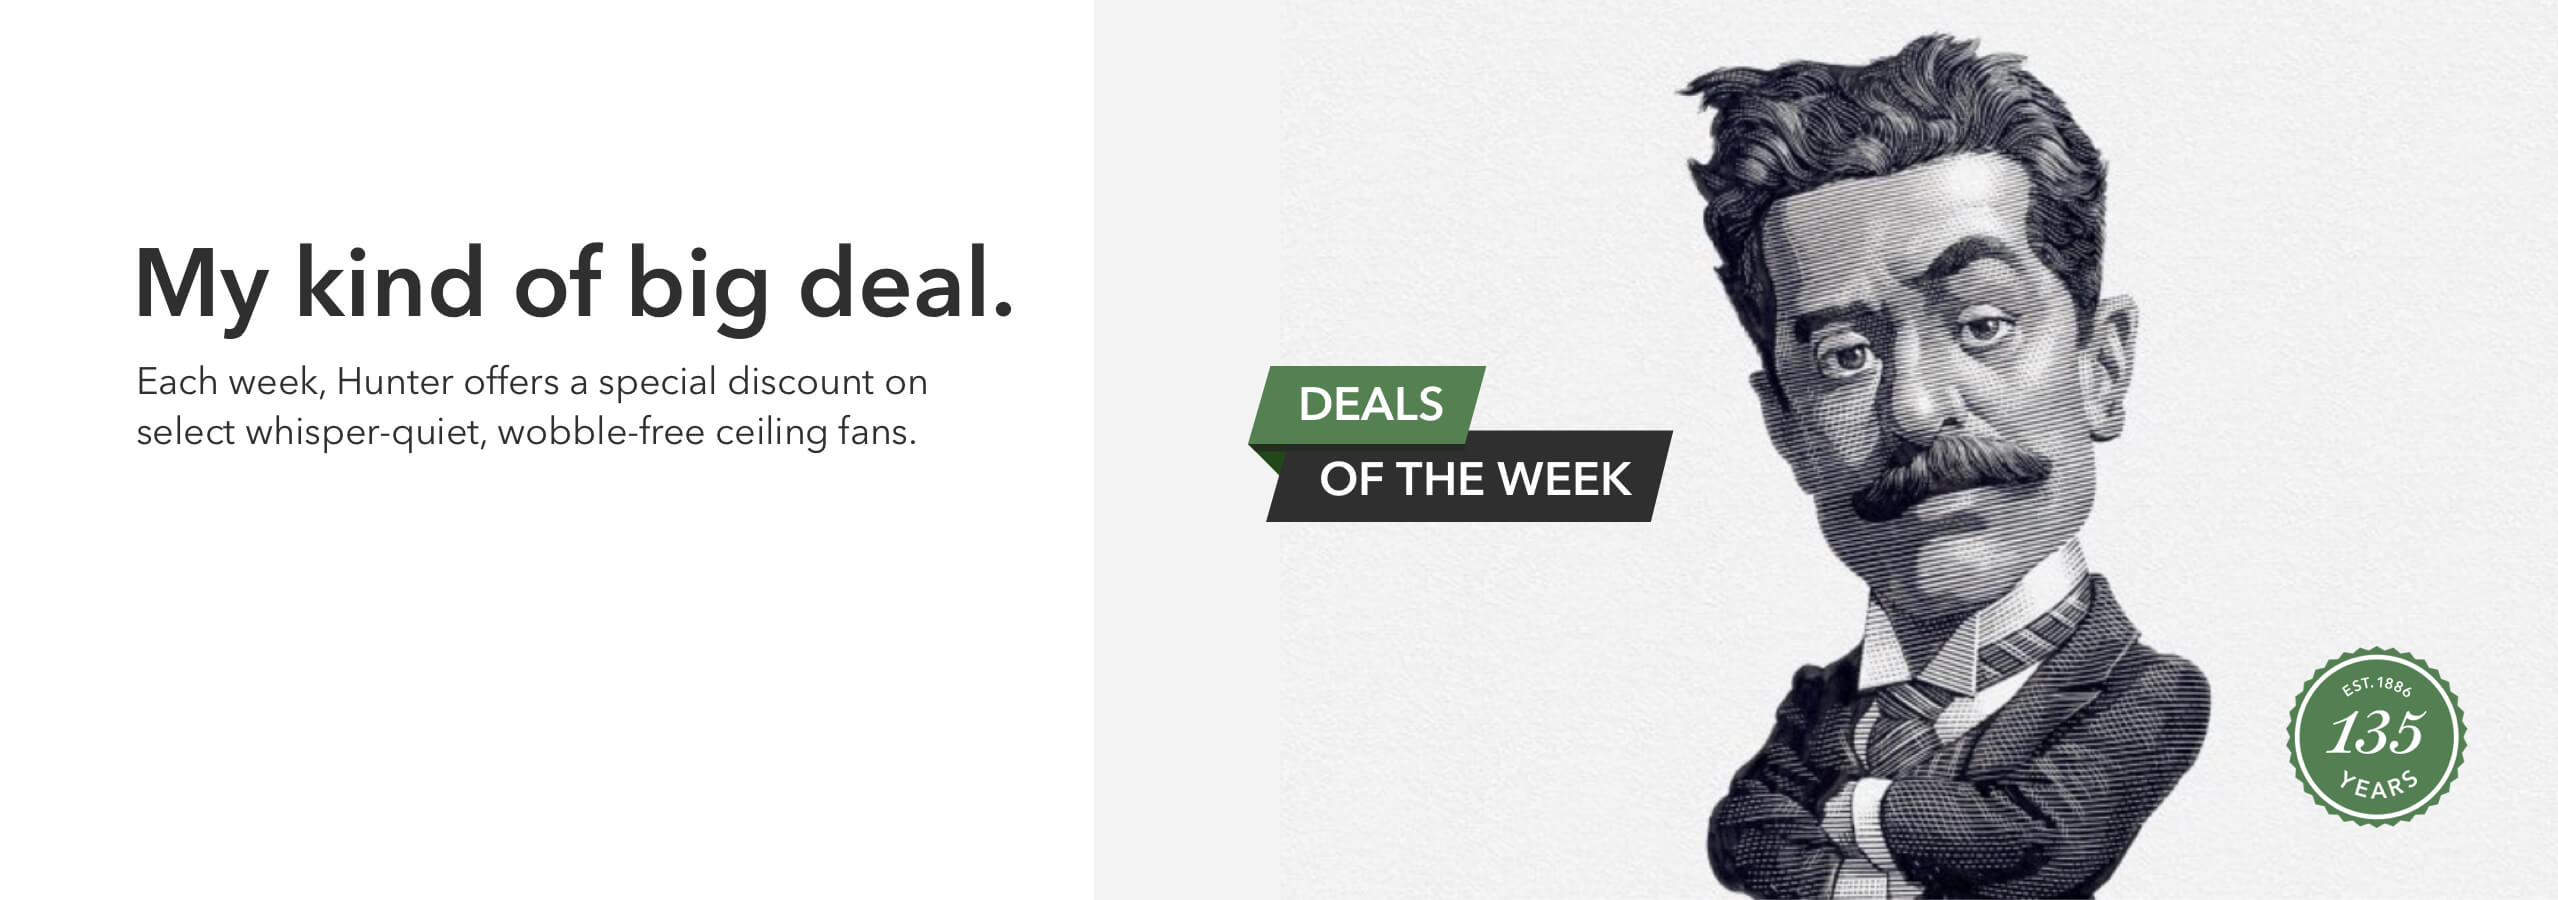 Deal of the week.